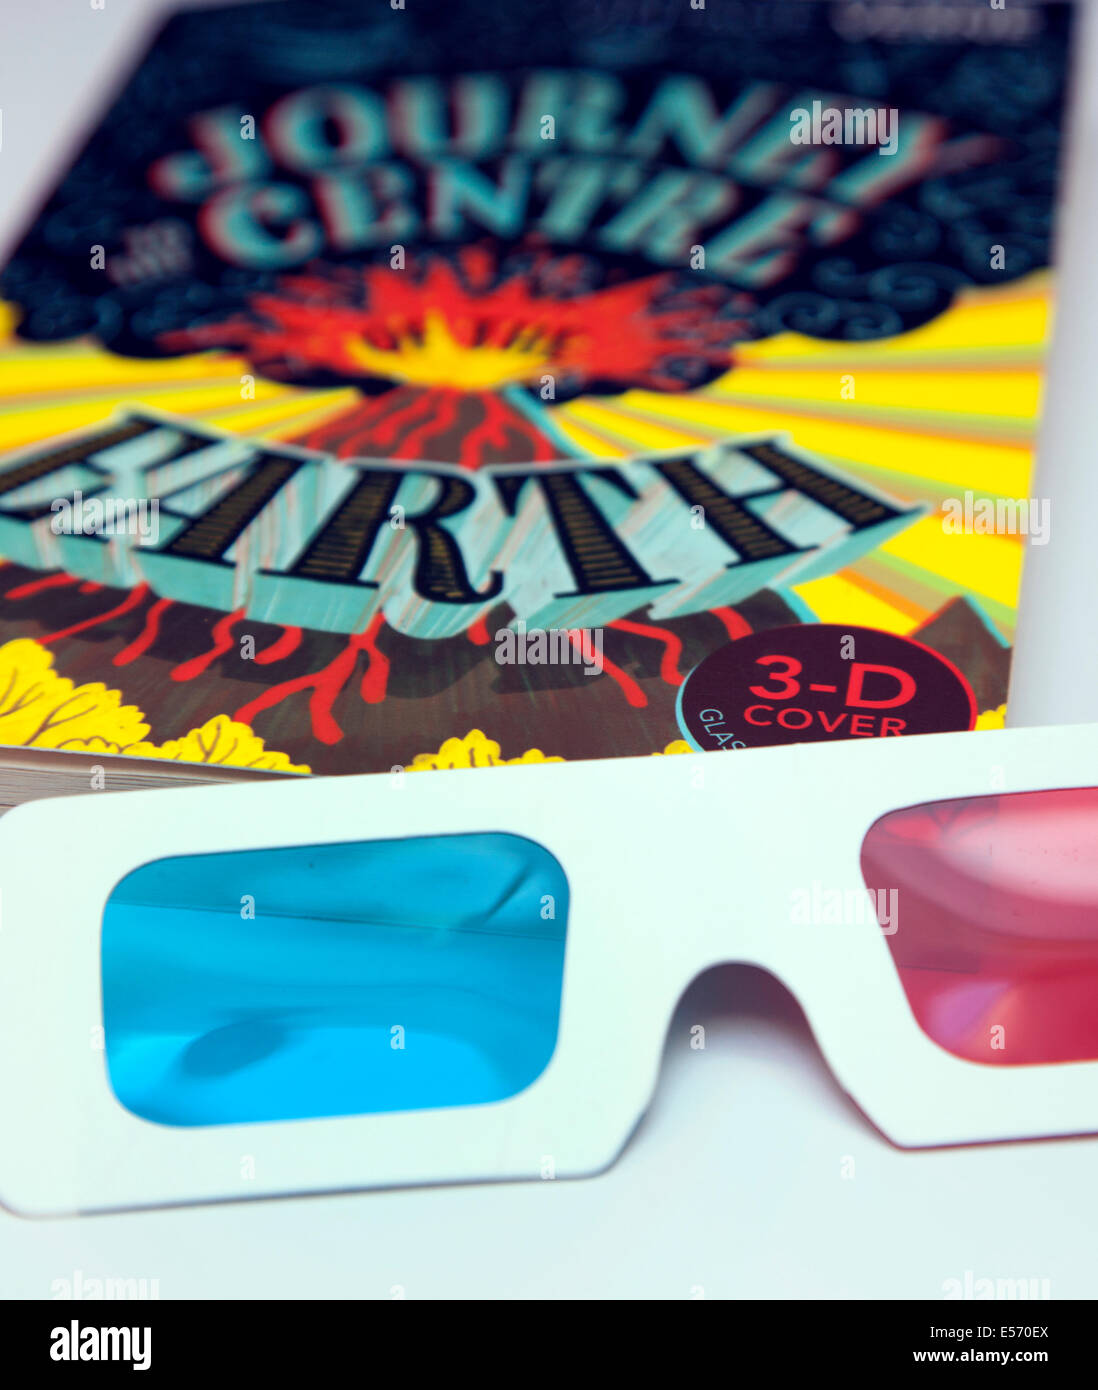 Book with 3D cover design and glasses, London - Stock Image